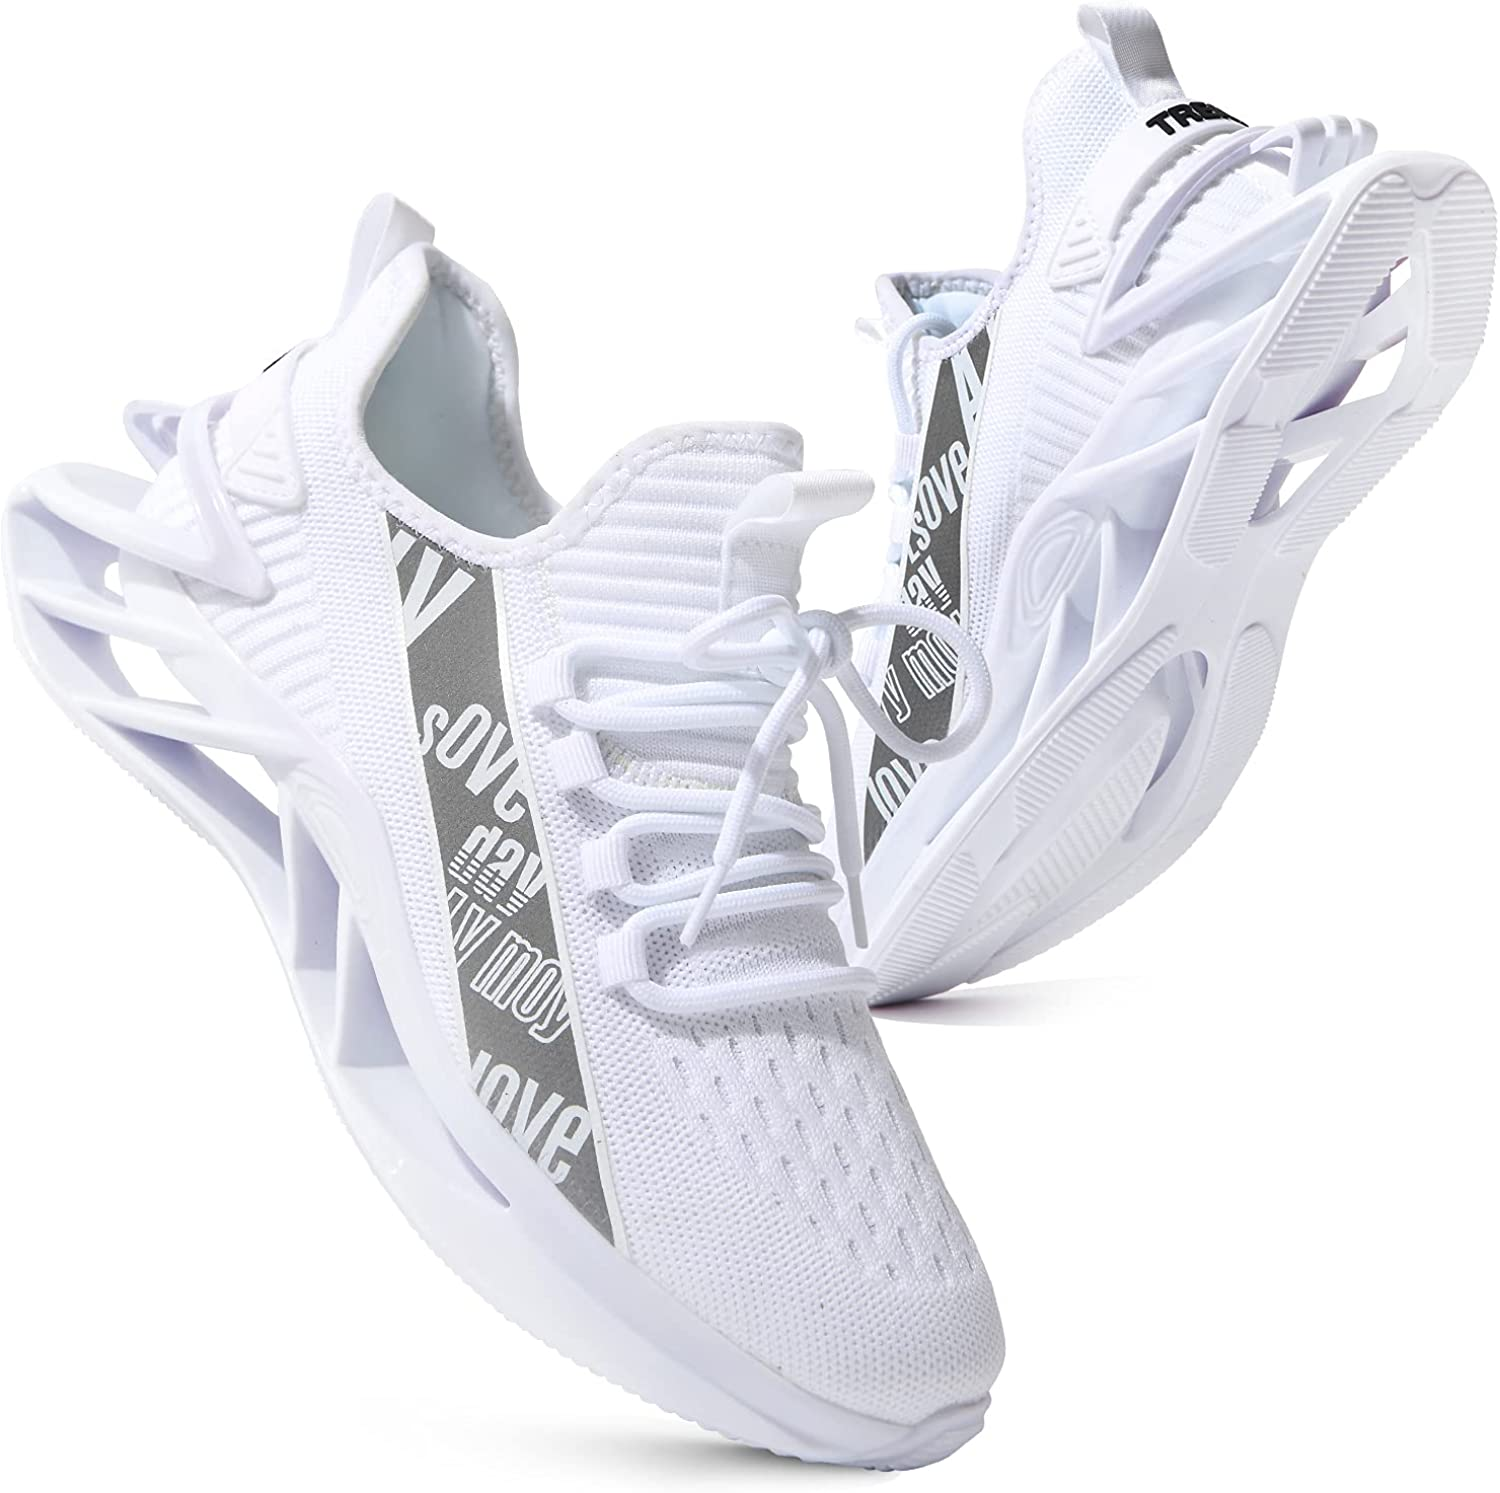 kokib Men's Running Max 49% OFF Sports Walking Lightweight Shoes At the price of surprise Breath Mesh